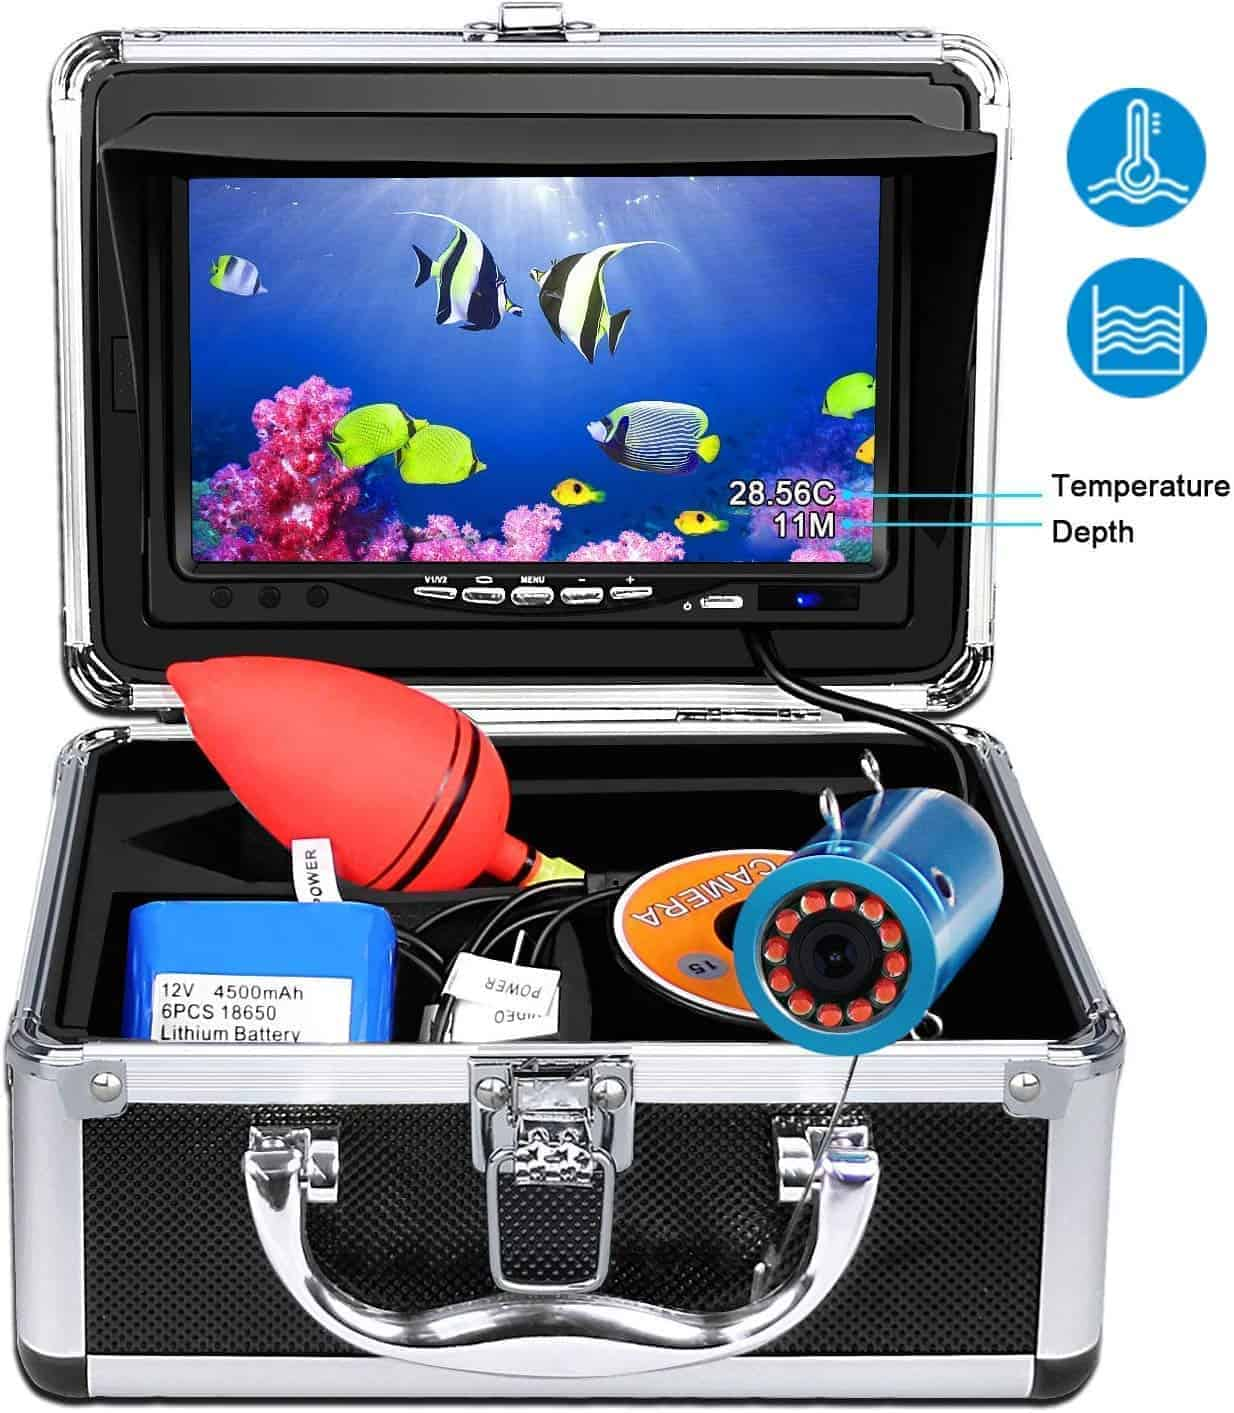 Portable Underwater Fishing Camera,HXEY with Water Depth and Temperature Function IP68 Waterproof